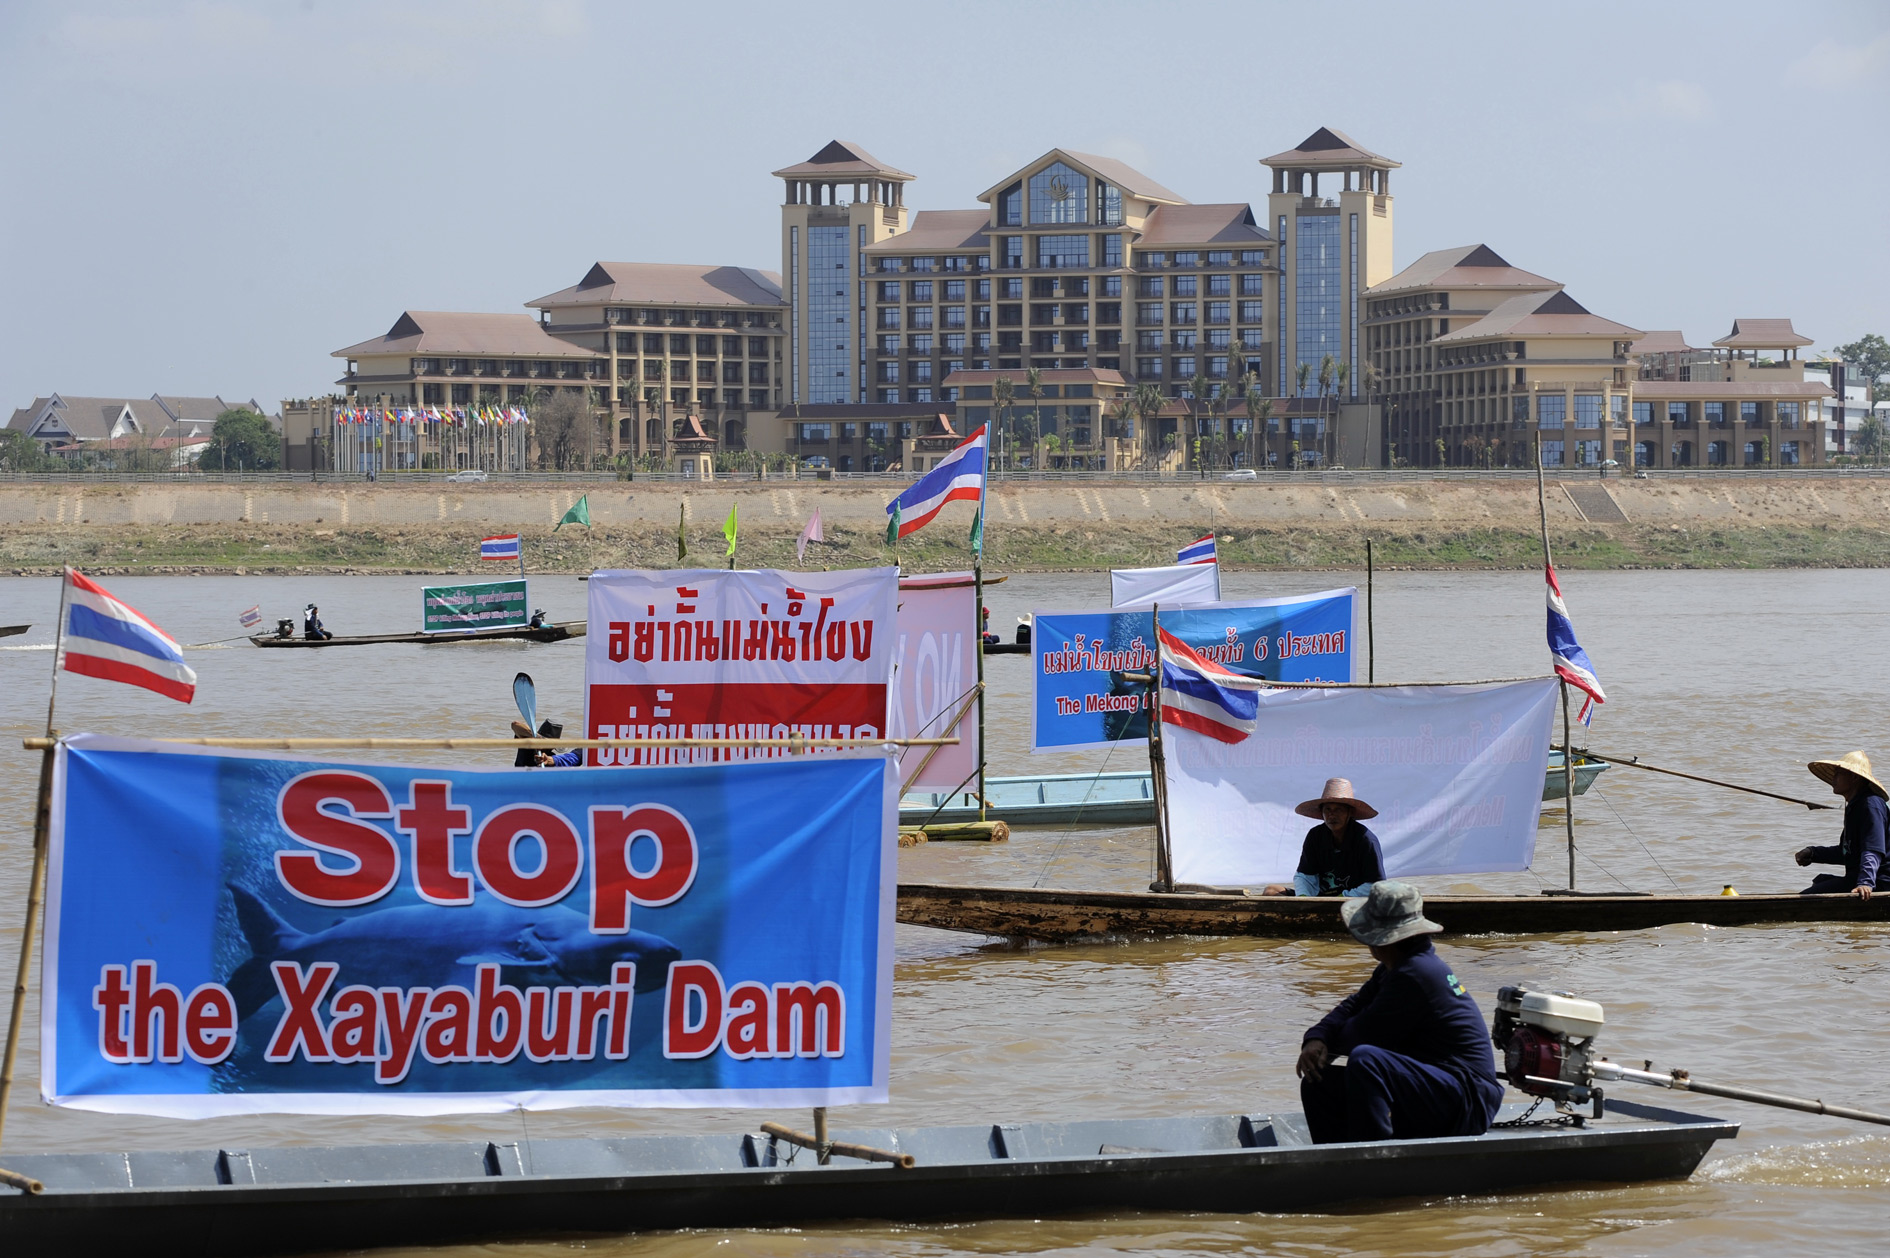 Thai NGOs stage a boat protest on the Mekong River in Laos. The convention centre on the opposite bank was hosting a major international conference.